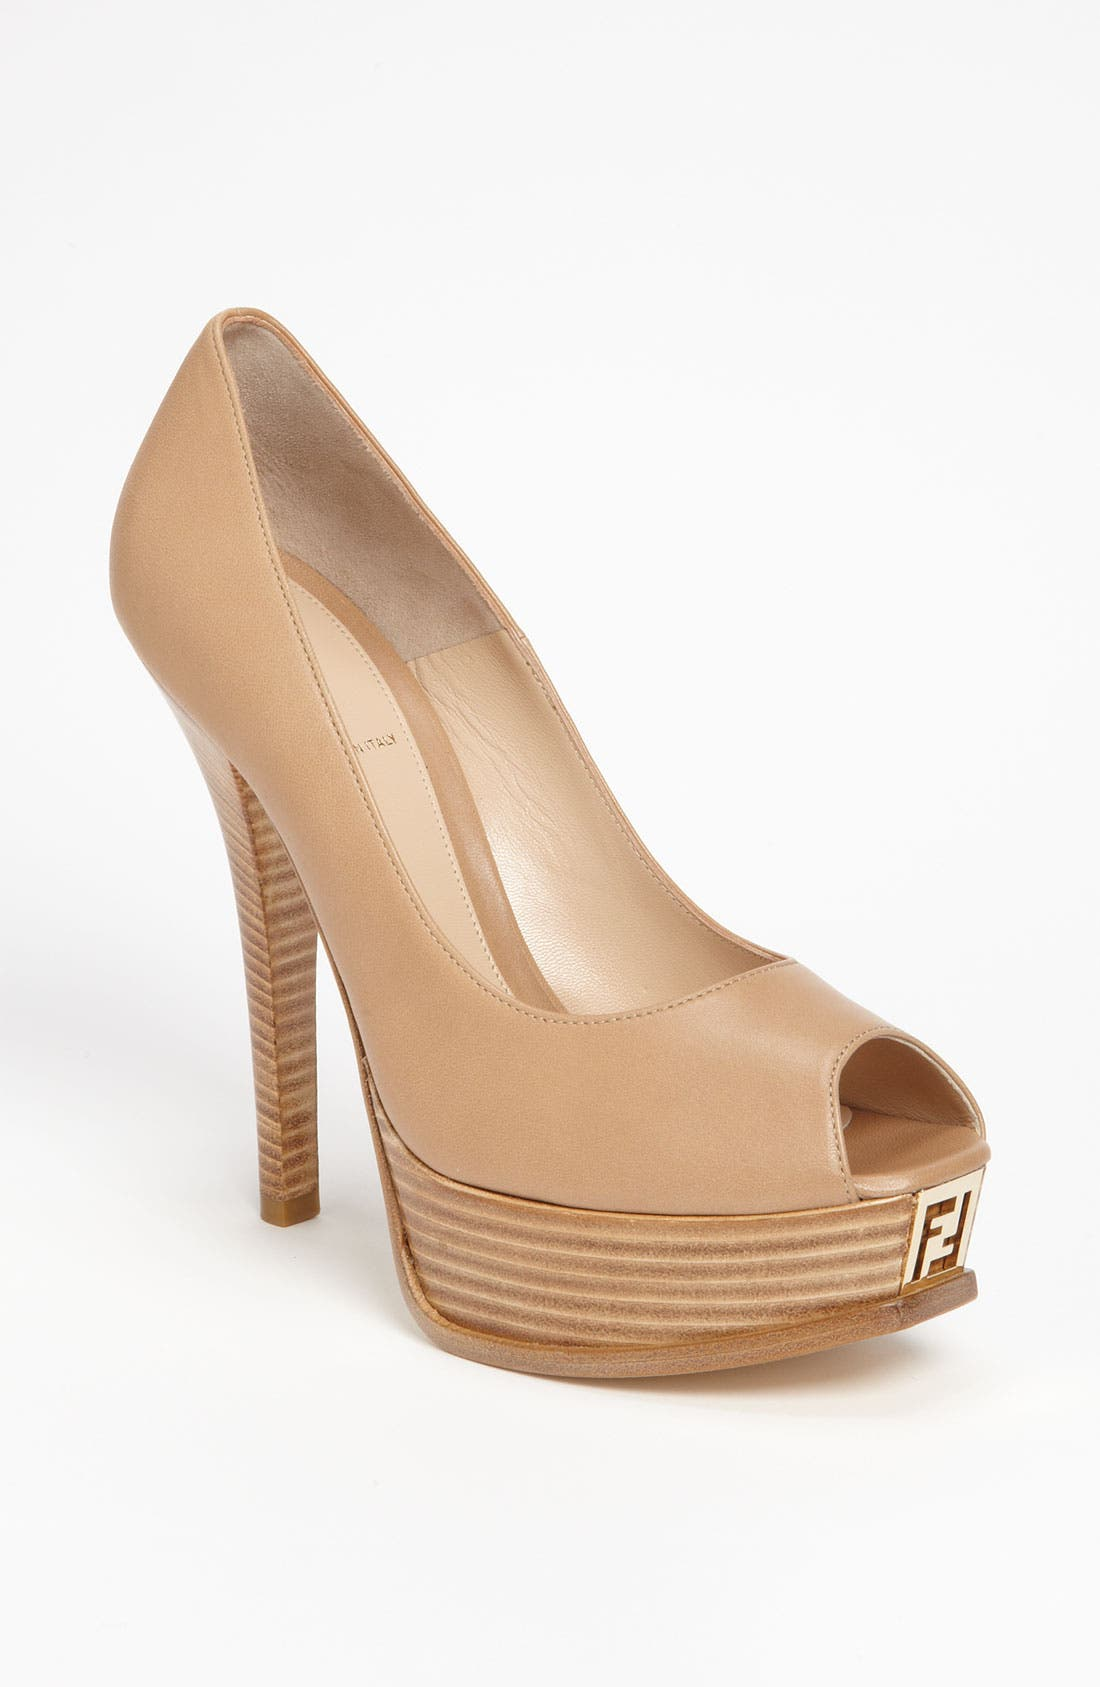 Main Image - Fendi 'Fendista' Pump